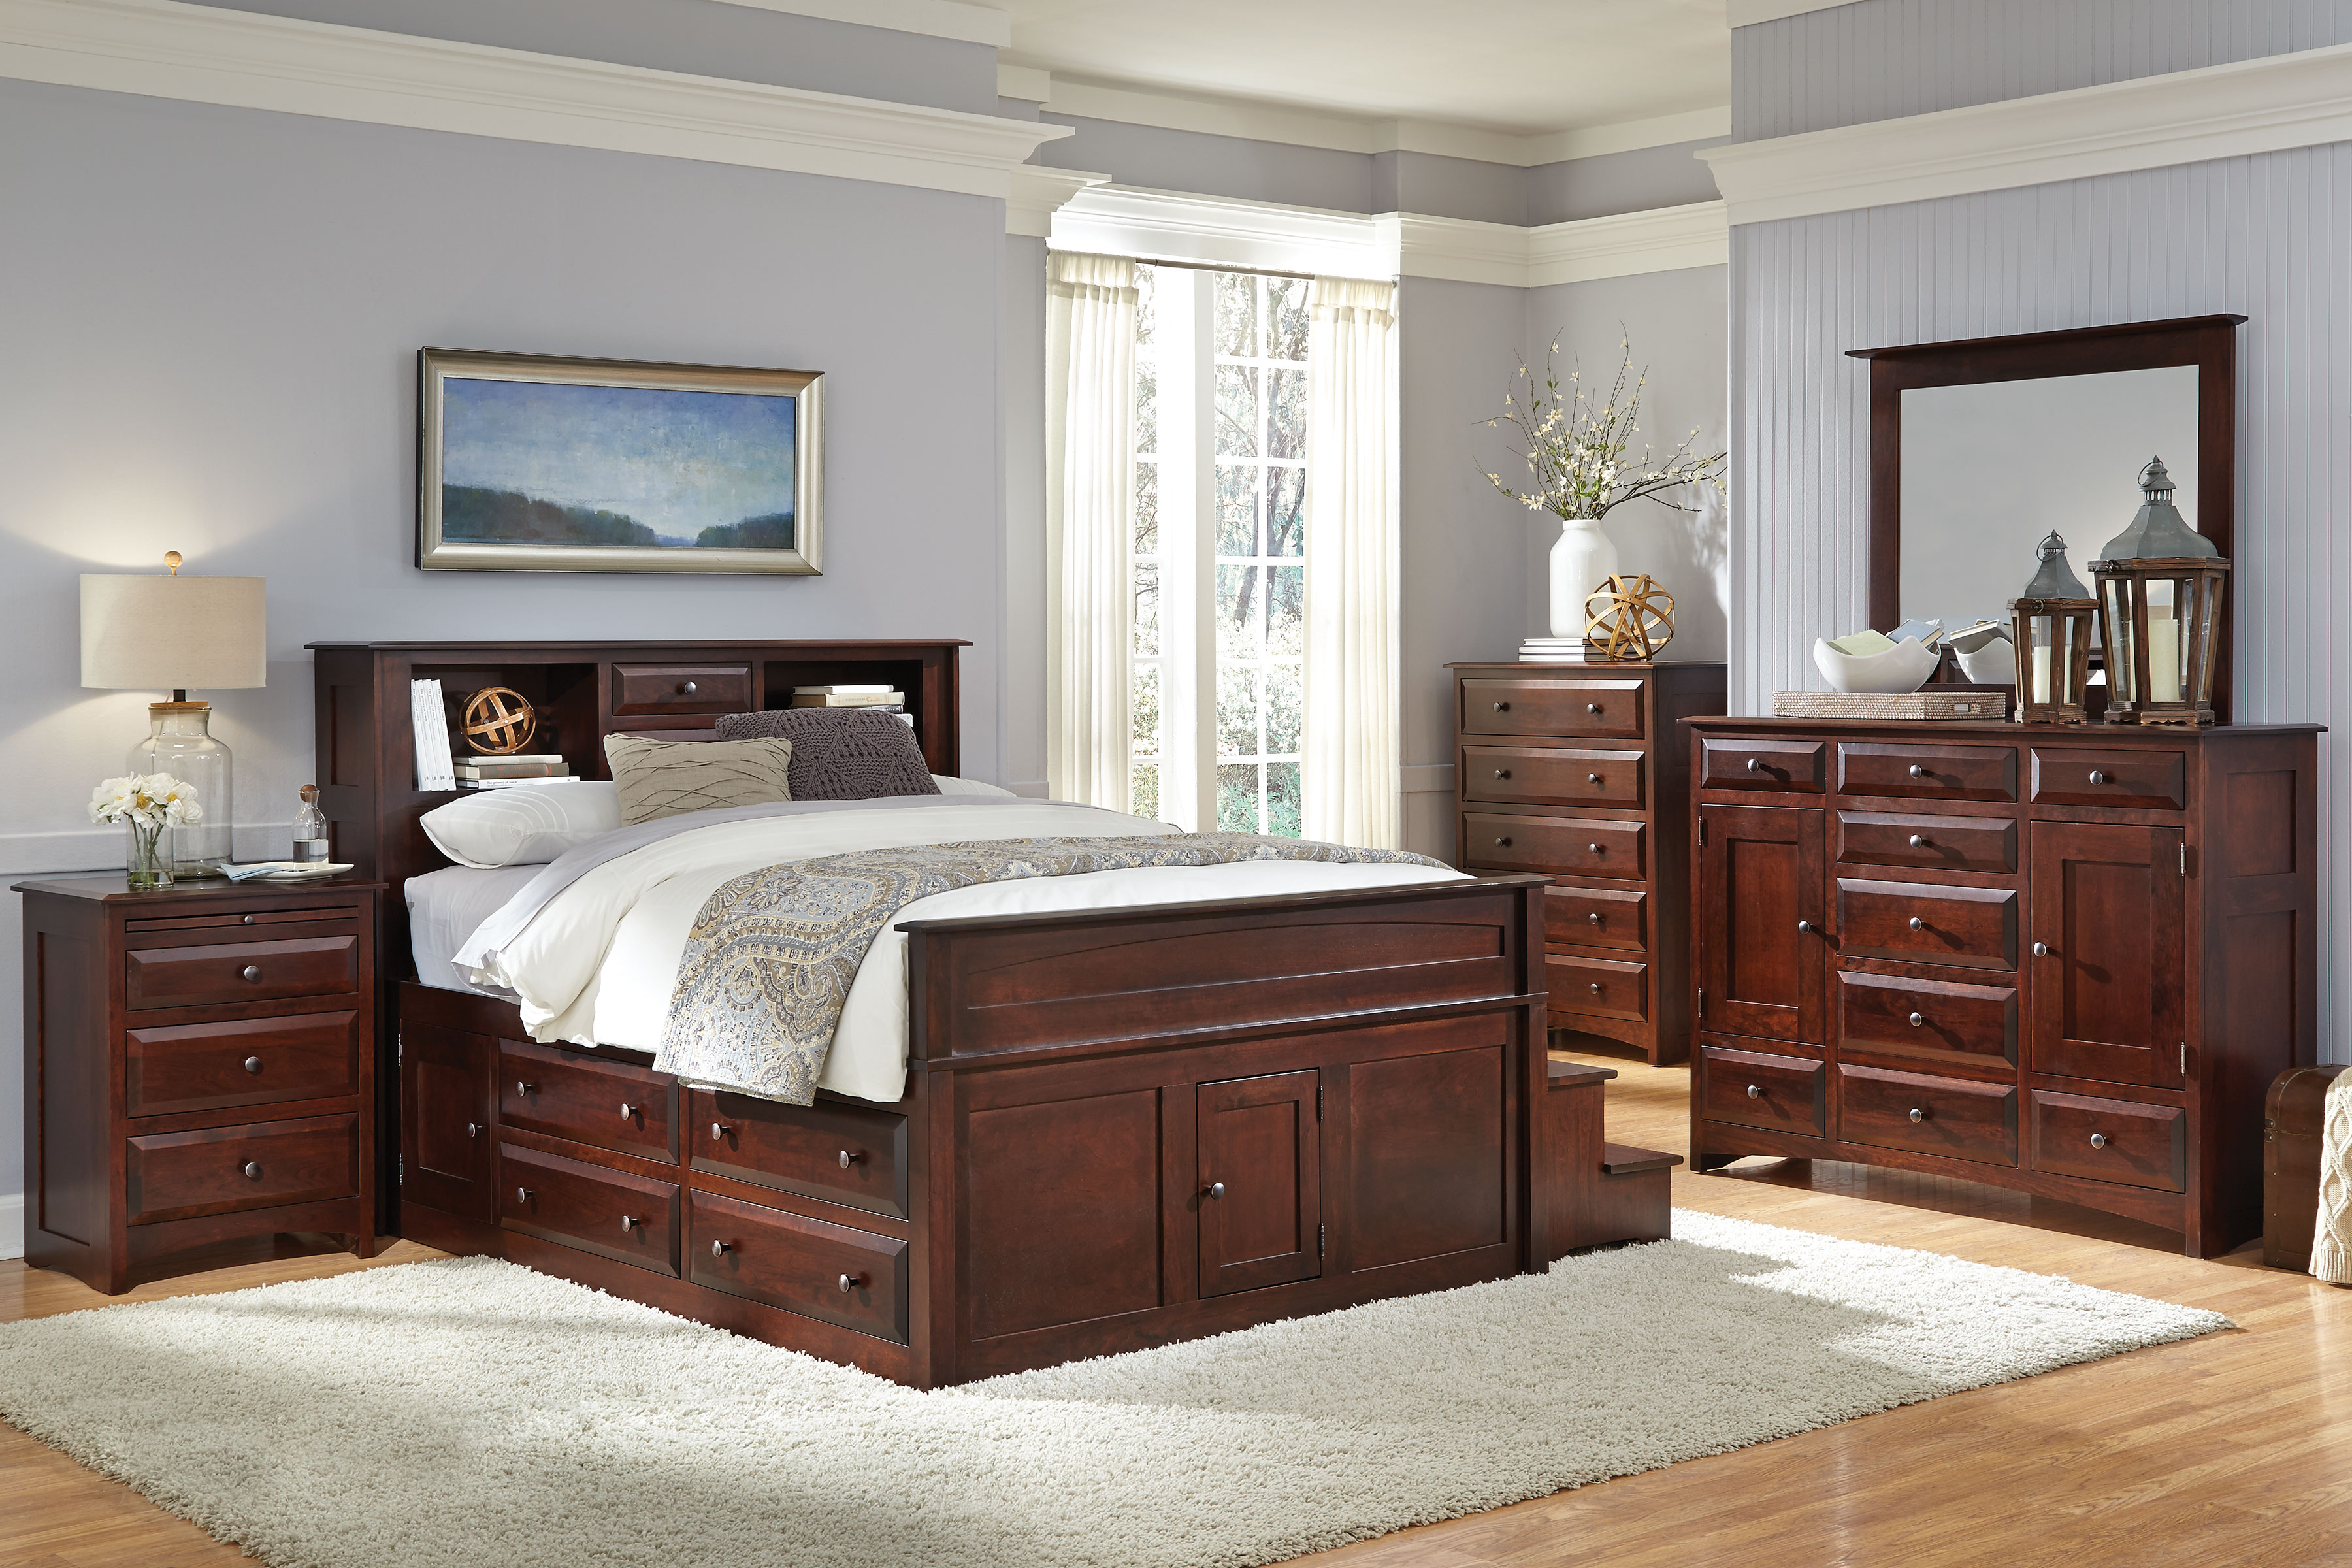 bedroom levin furniture 12080 | 518890 fit inside 7c320 320 composite to center center 7c320 320 background color white